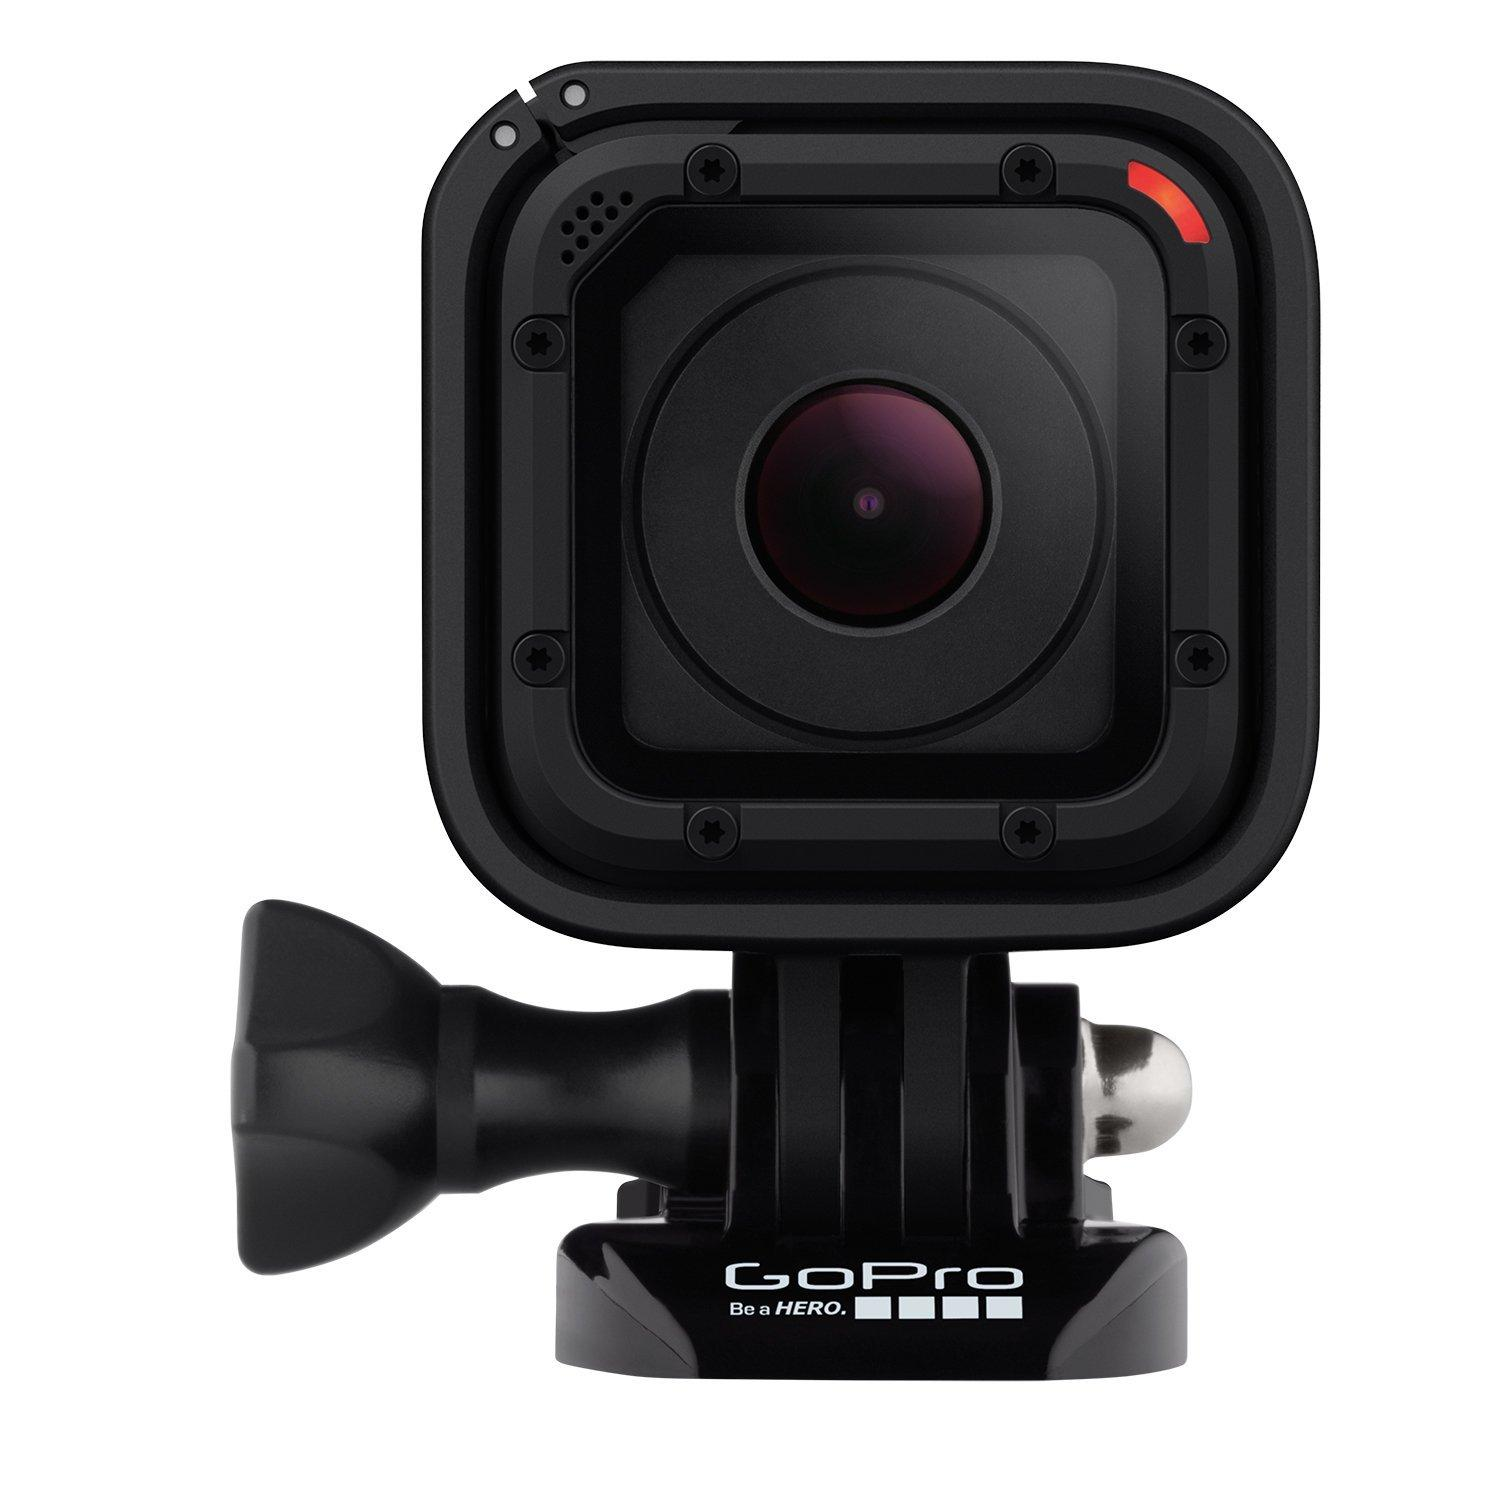 Free $40 Amazon Gift Card GoPro HERO4 Session Action Camera